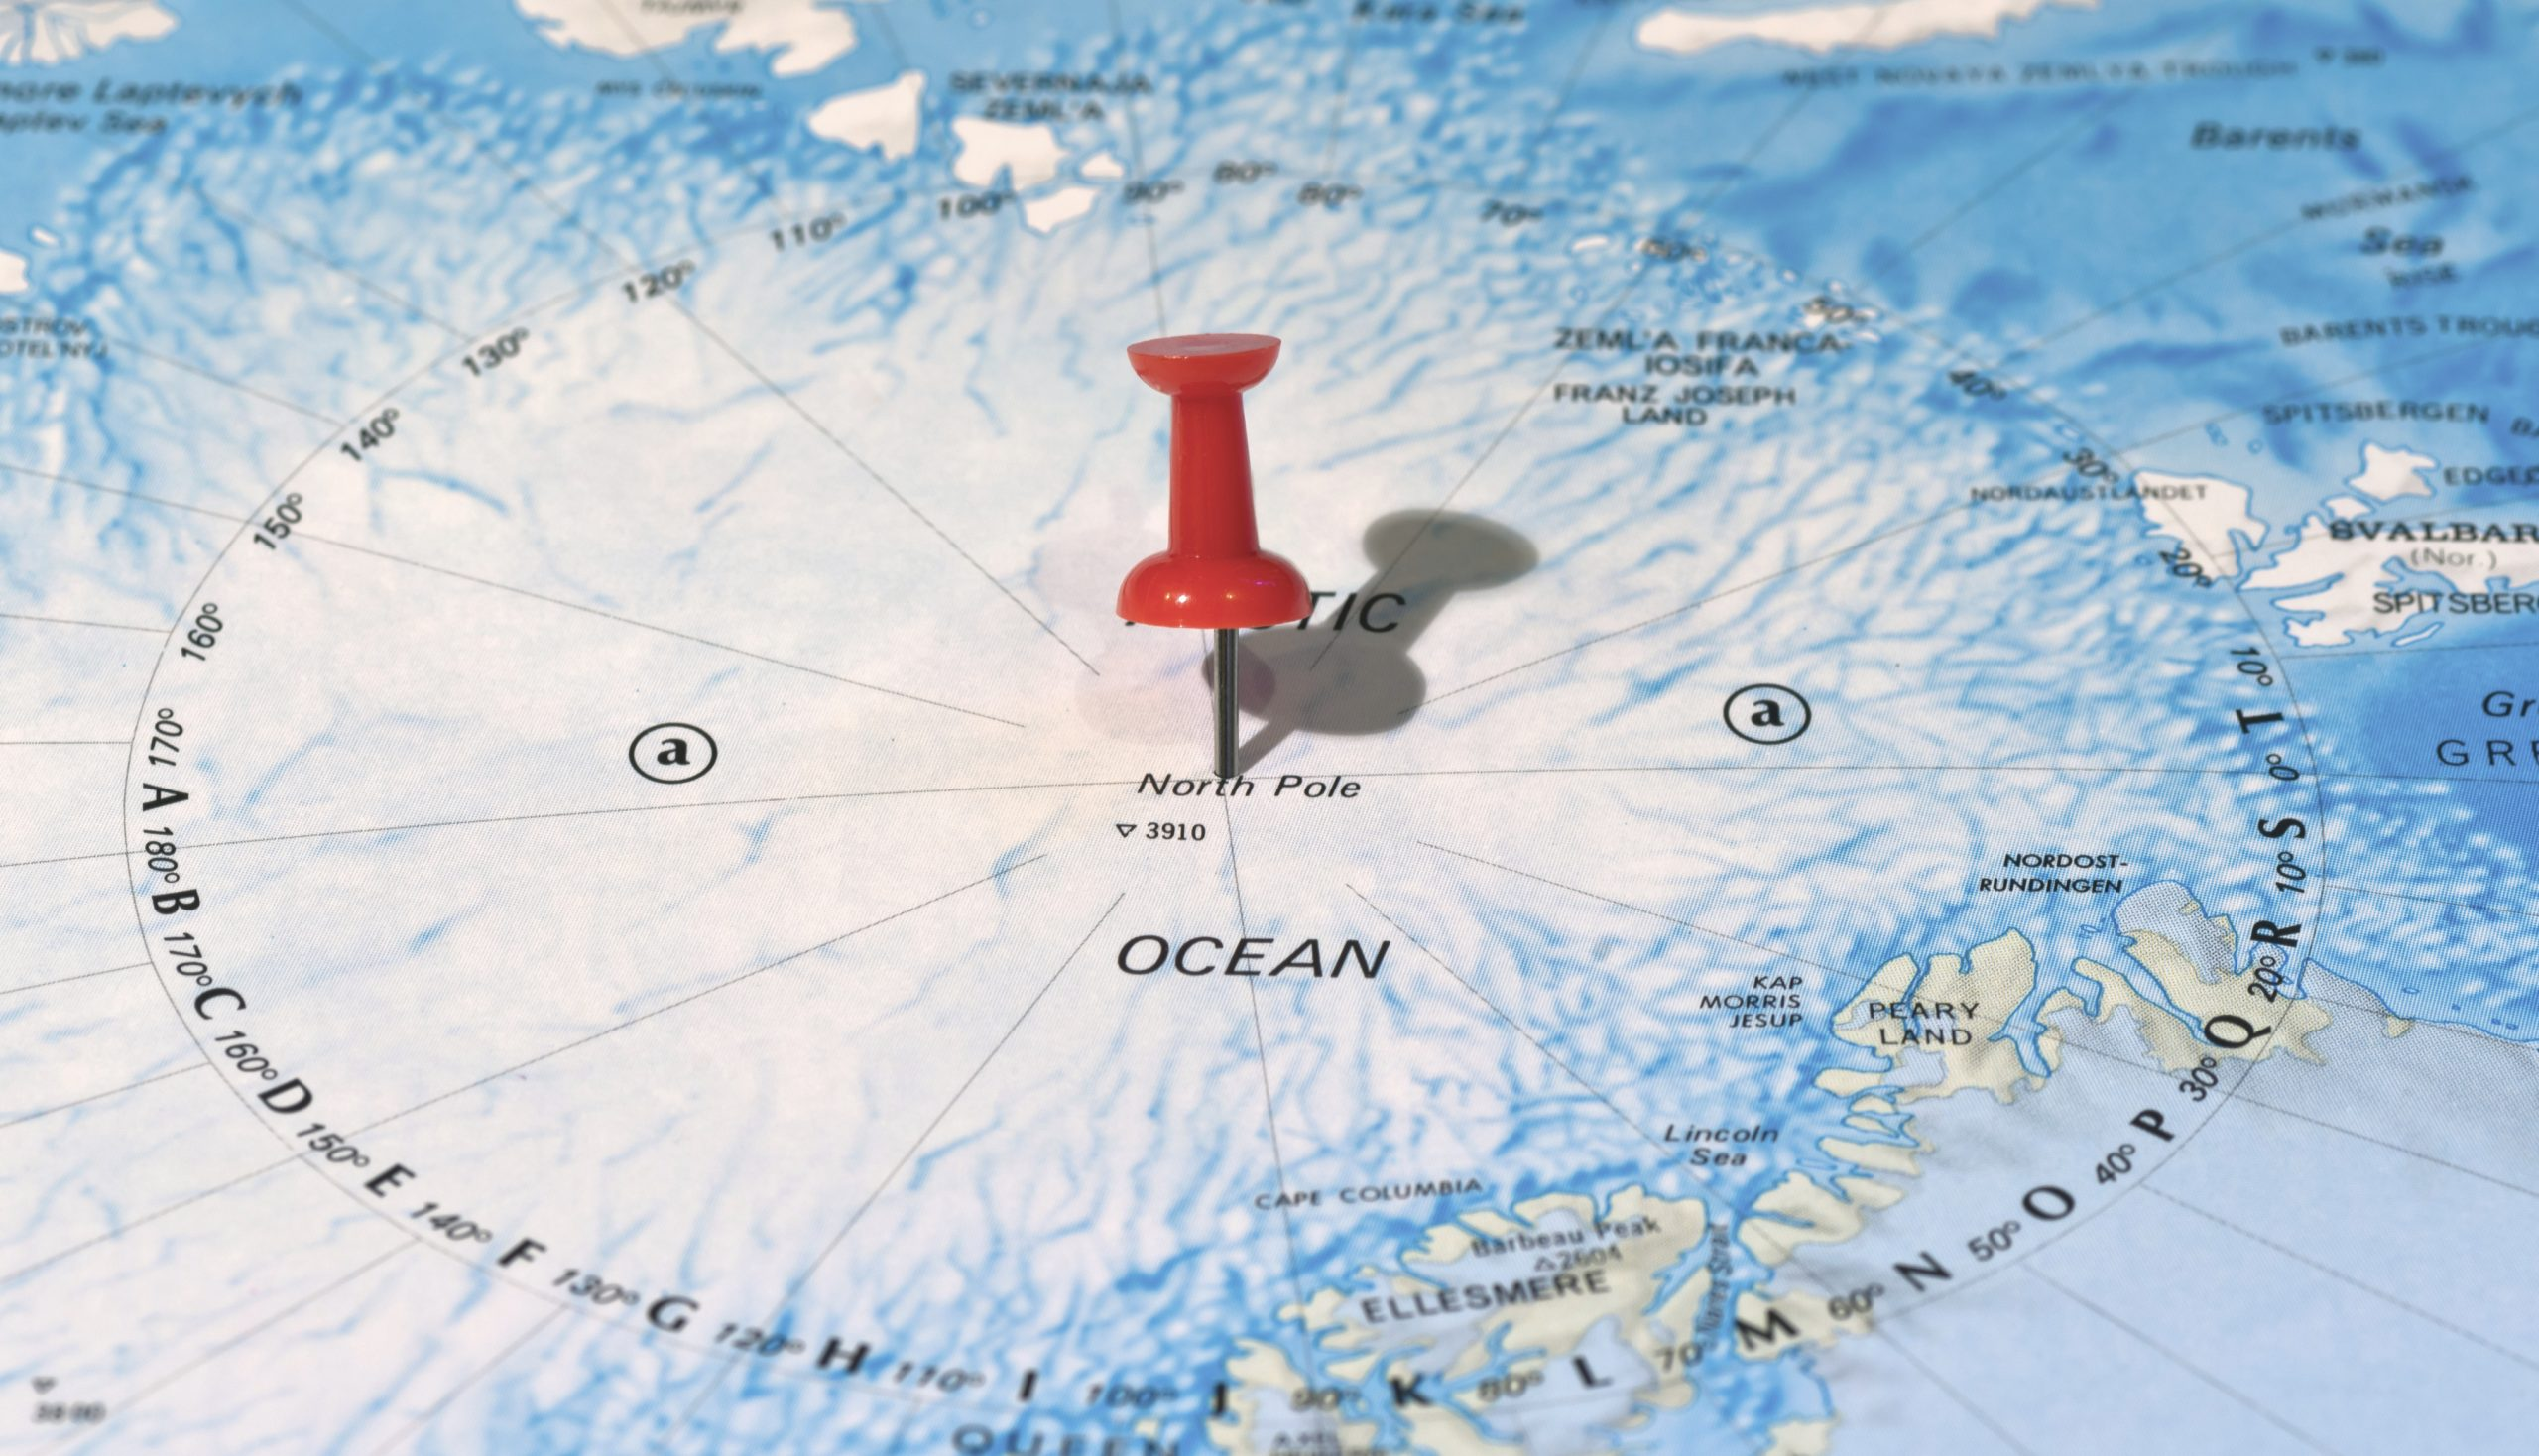 Newcomers' Guide: North Pole vs South Pole Expeditions » Explorersweb